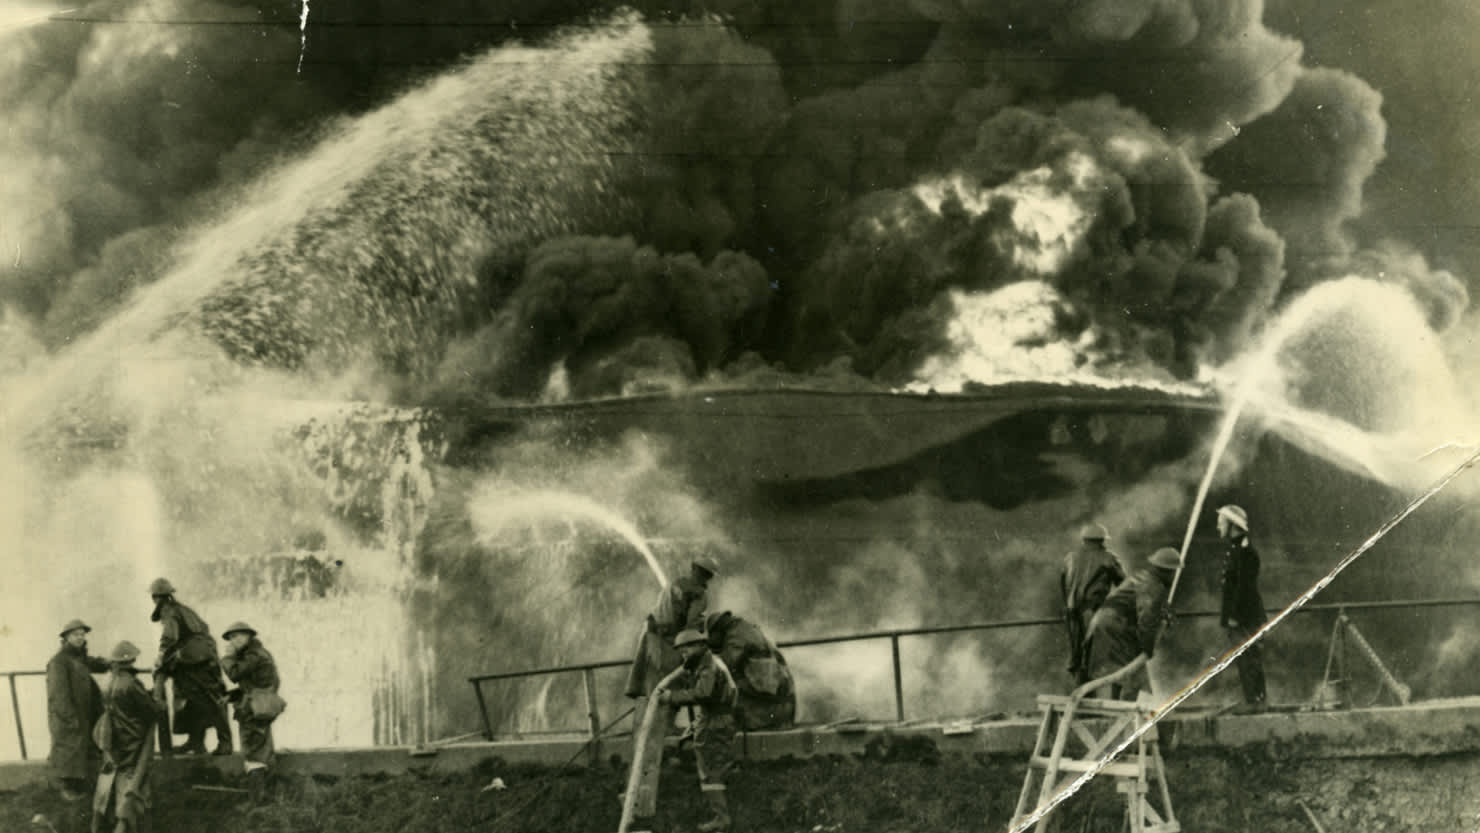 Firefighters during the Blitz in Plymstock, courtesy of The Box, Plymouth